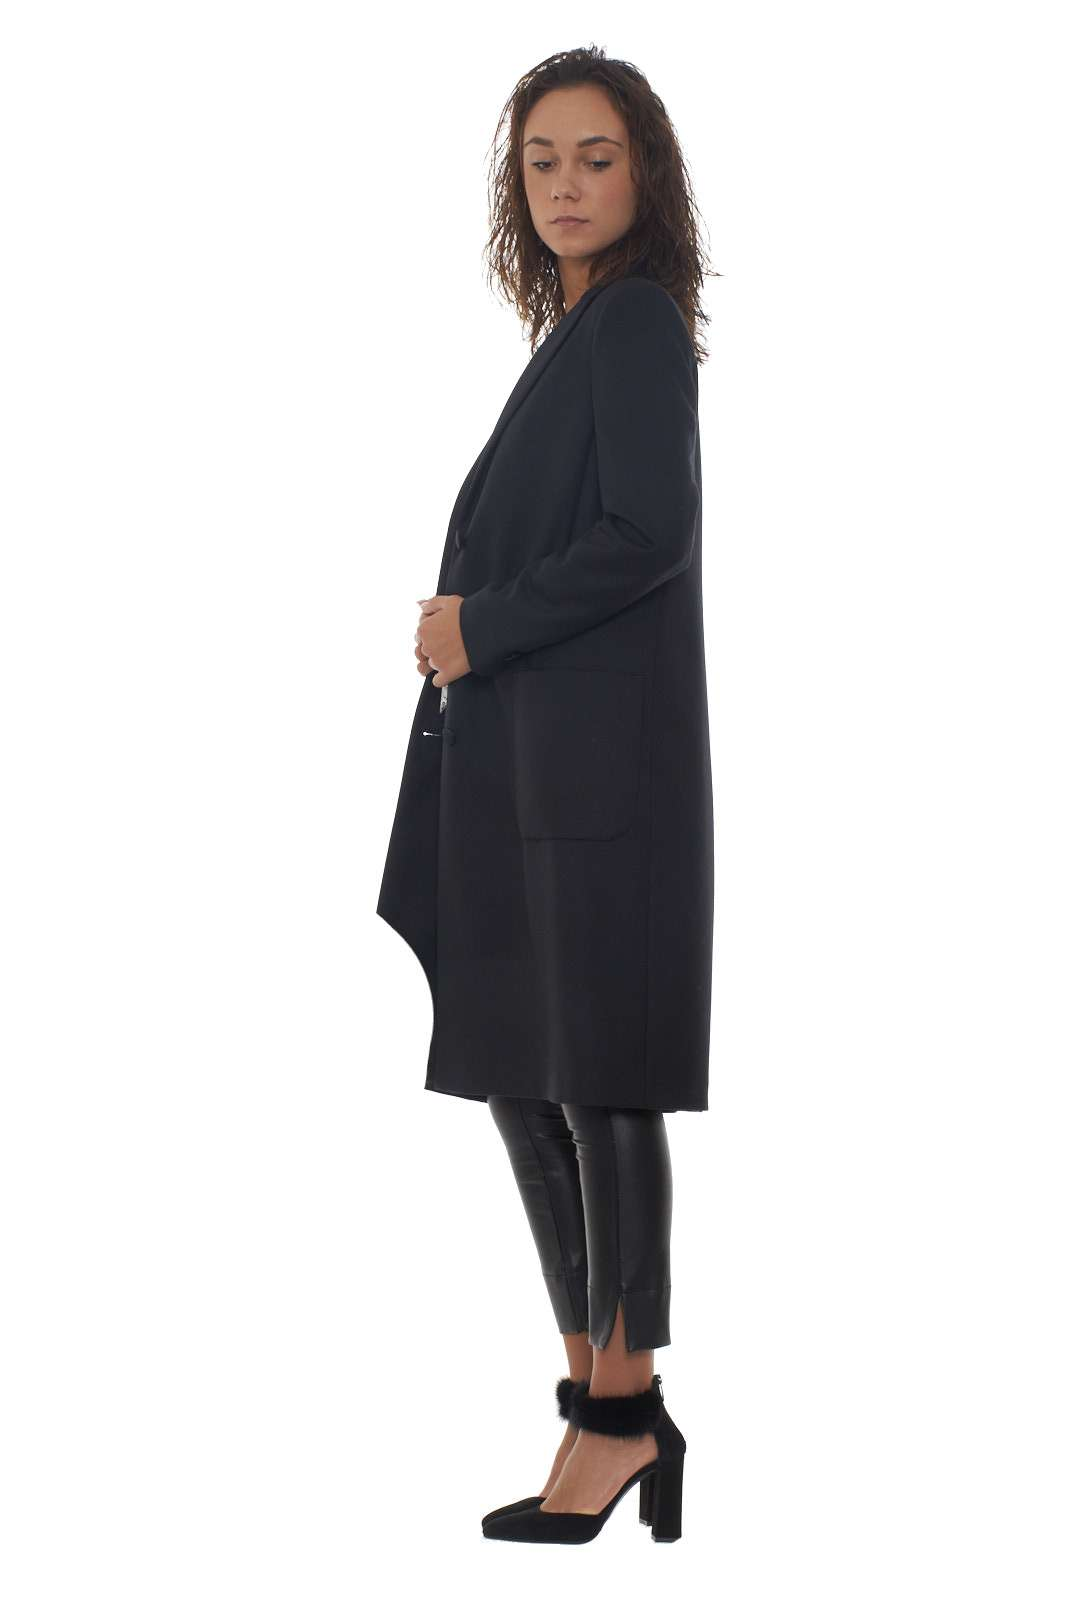 https://www.parmax.com/media/catalog/product/a/i/AI-outlet_parmax-cappotto-donna-Dondup-DJ278%20PX0065D-B.jpg